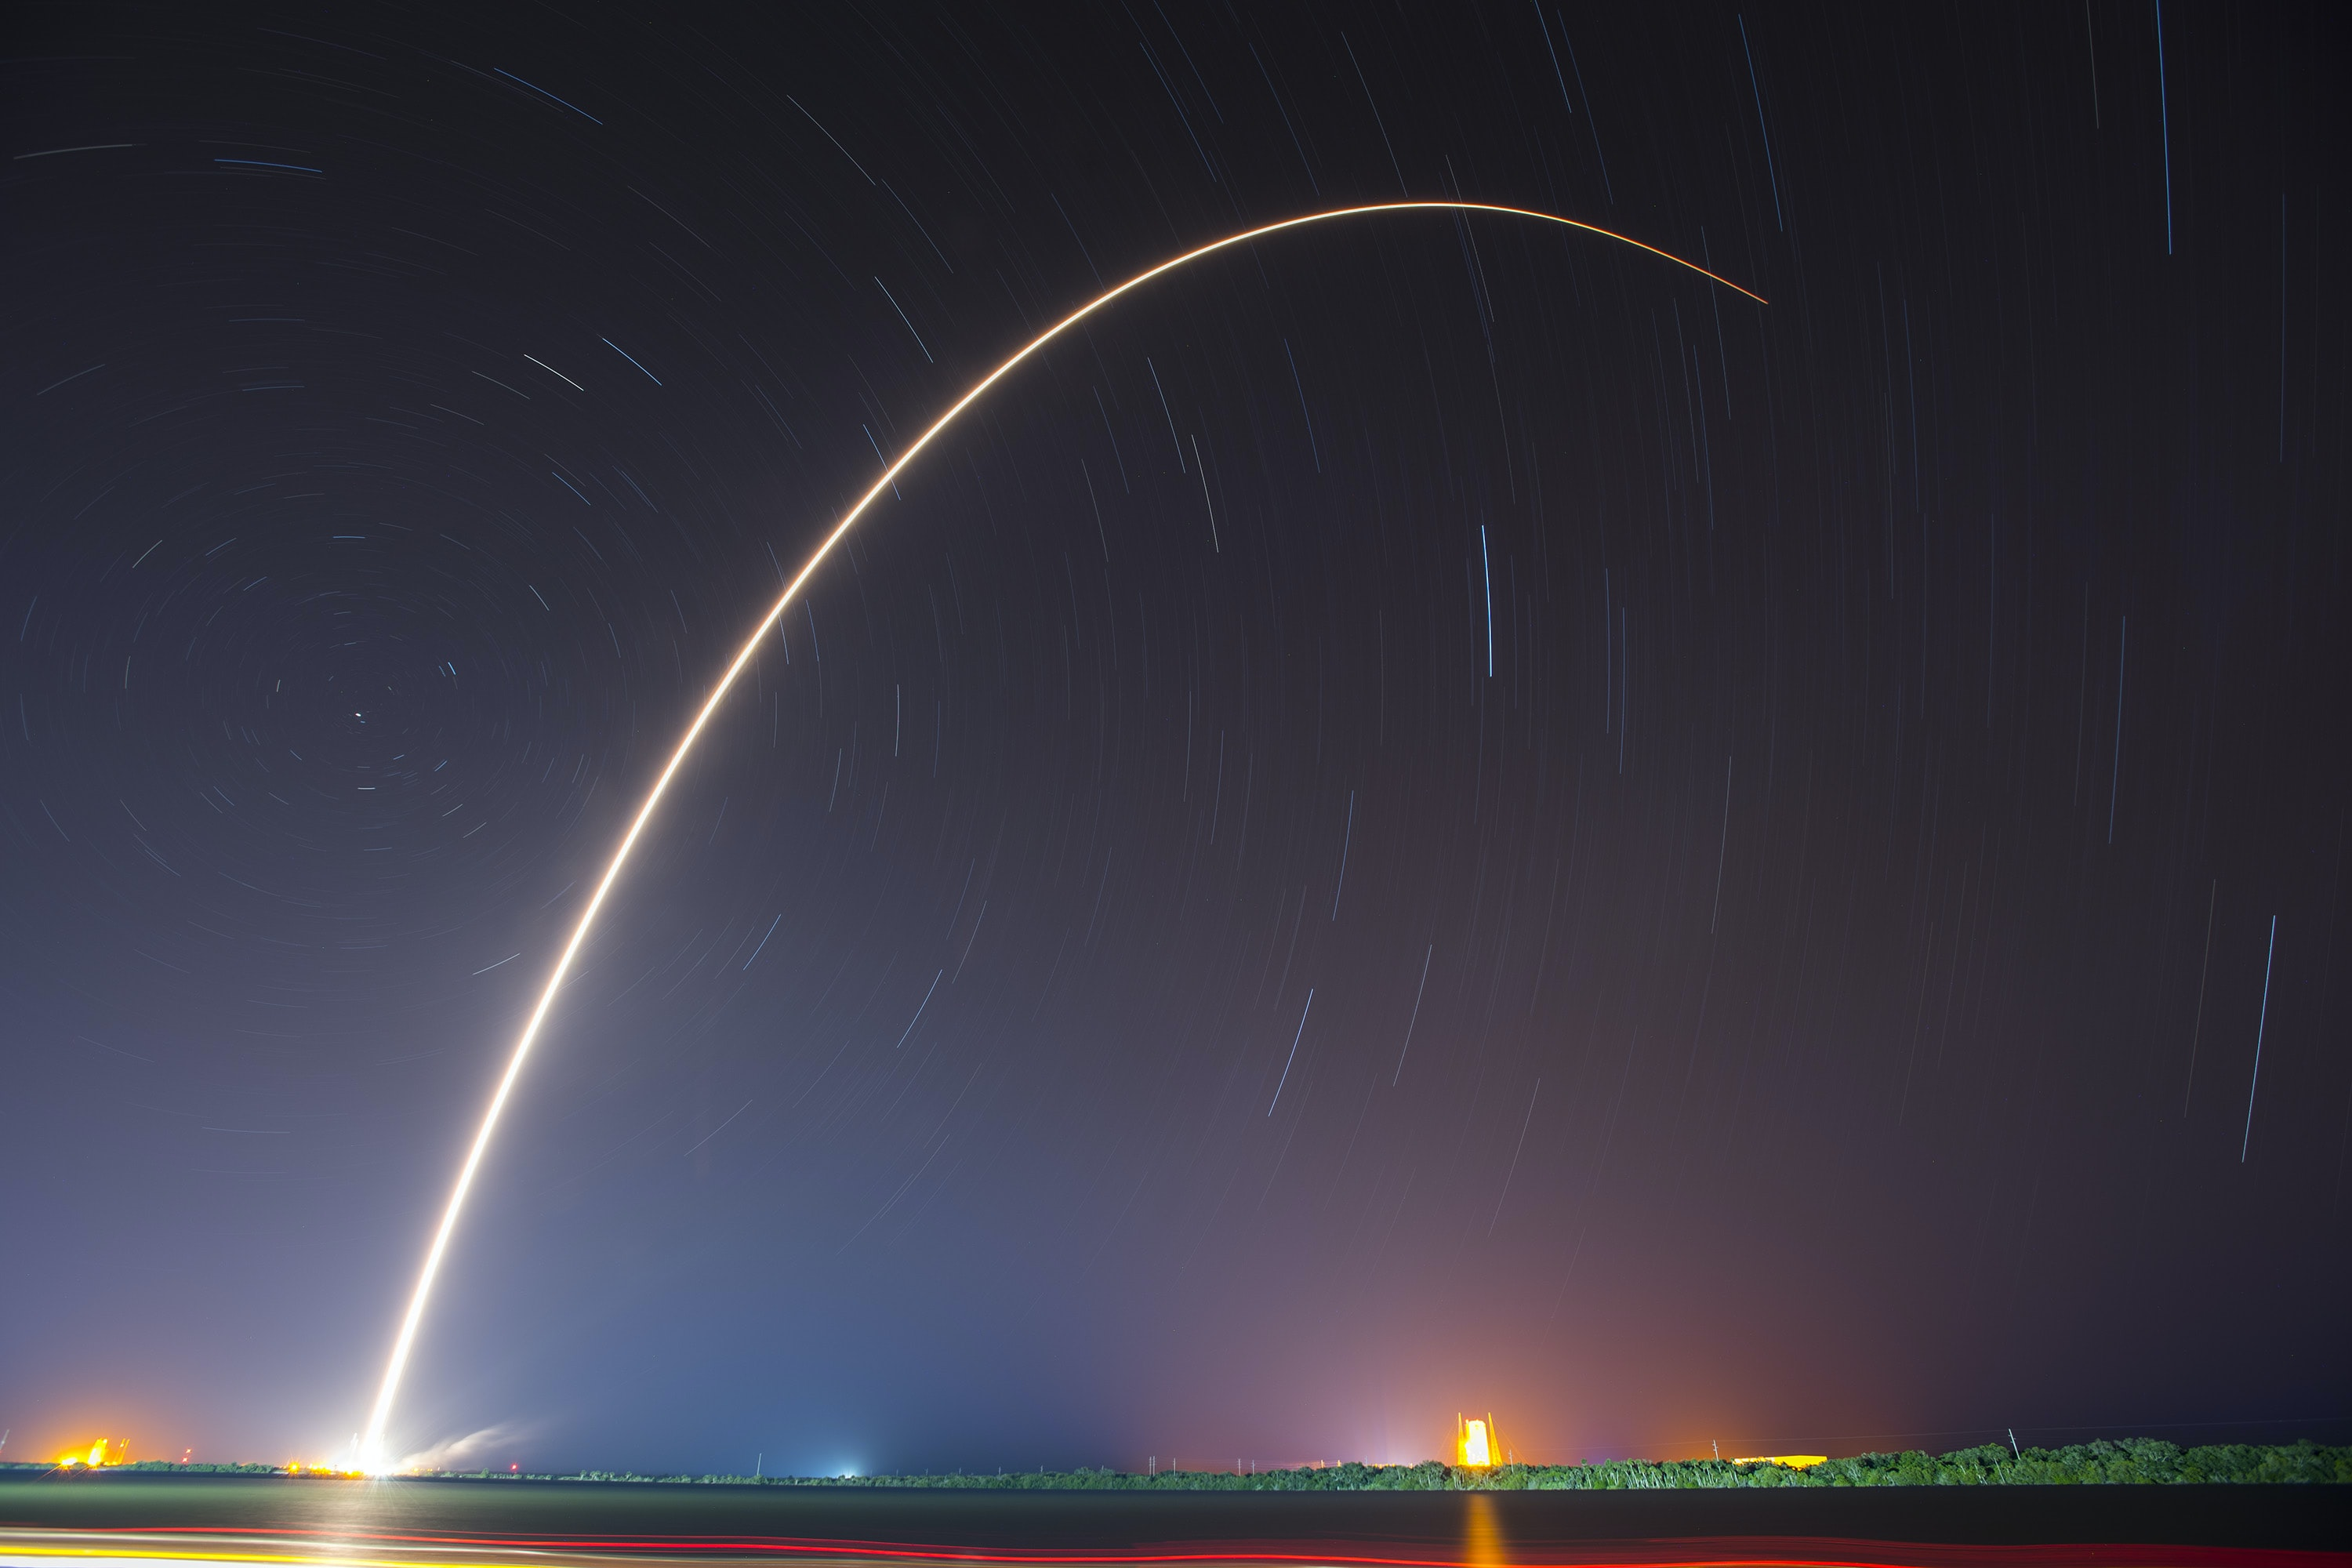 Free Unsplash photo from SpaceX